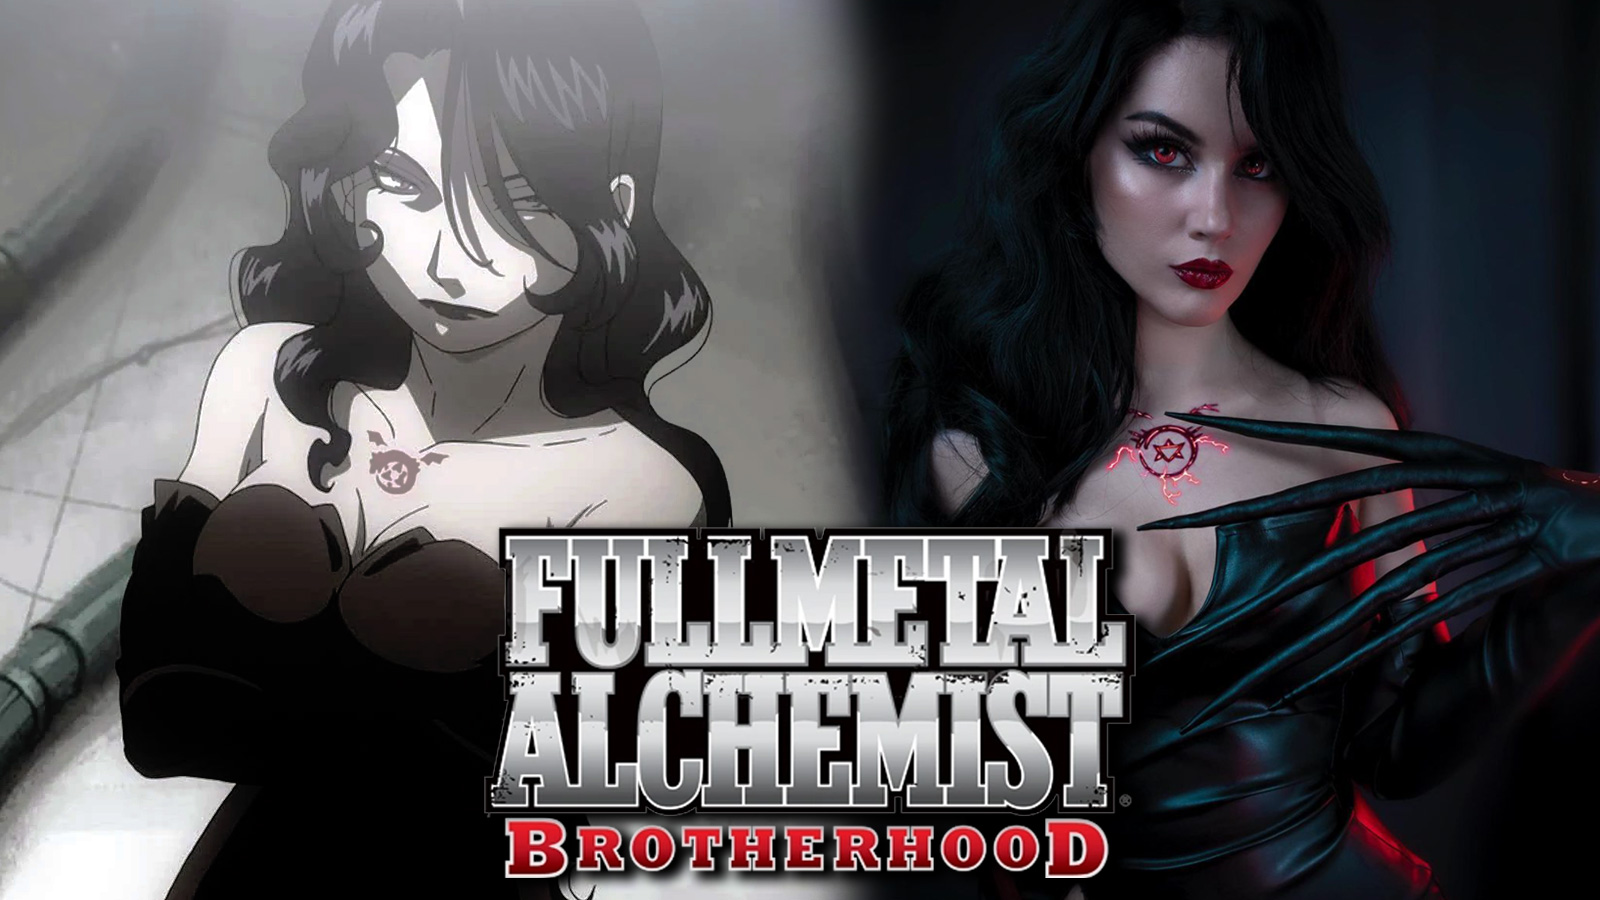 Screenshot of Lust from Fullmetal Alchemist: Brotherhood anime next to cosplayer.